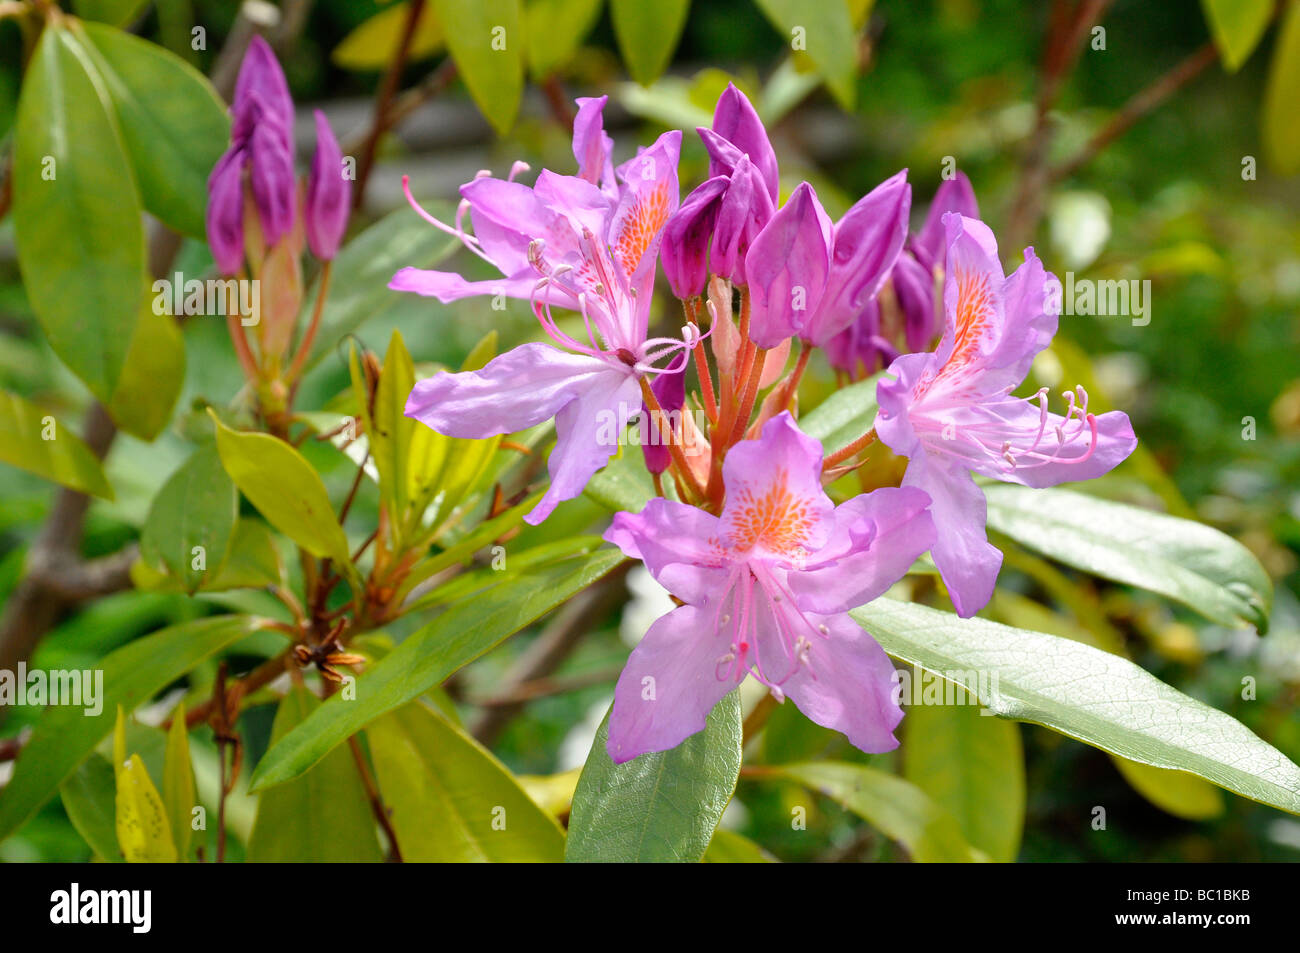 Rhododendron Flowers - Purple - Stock Image